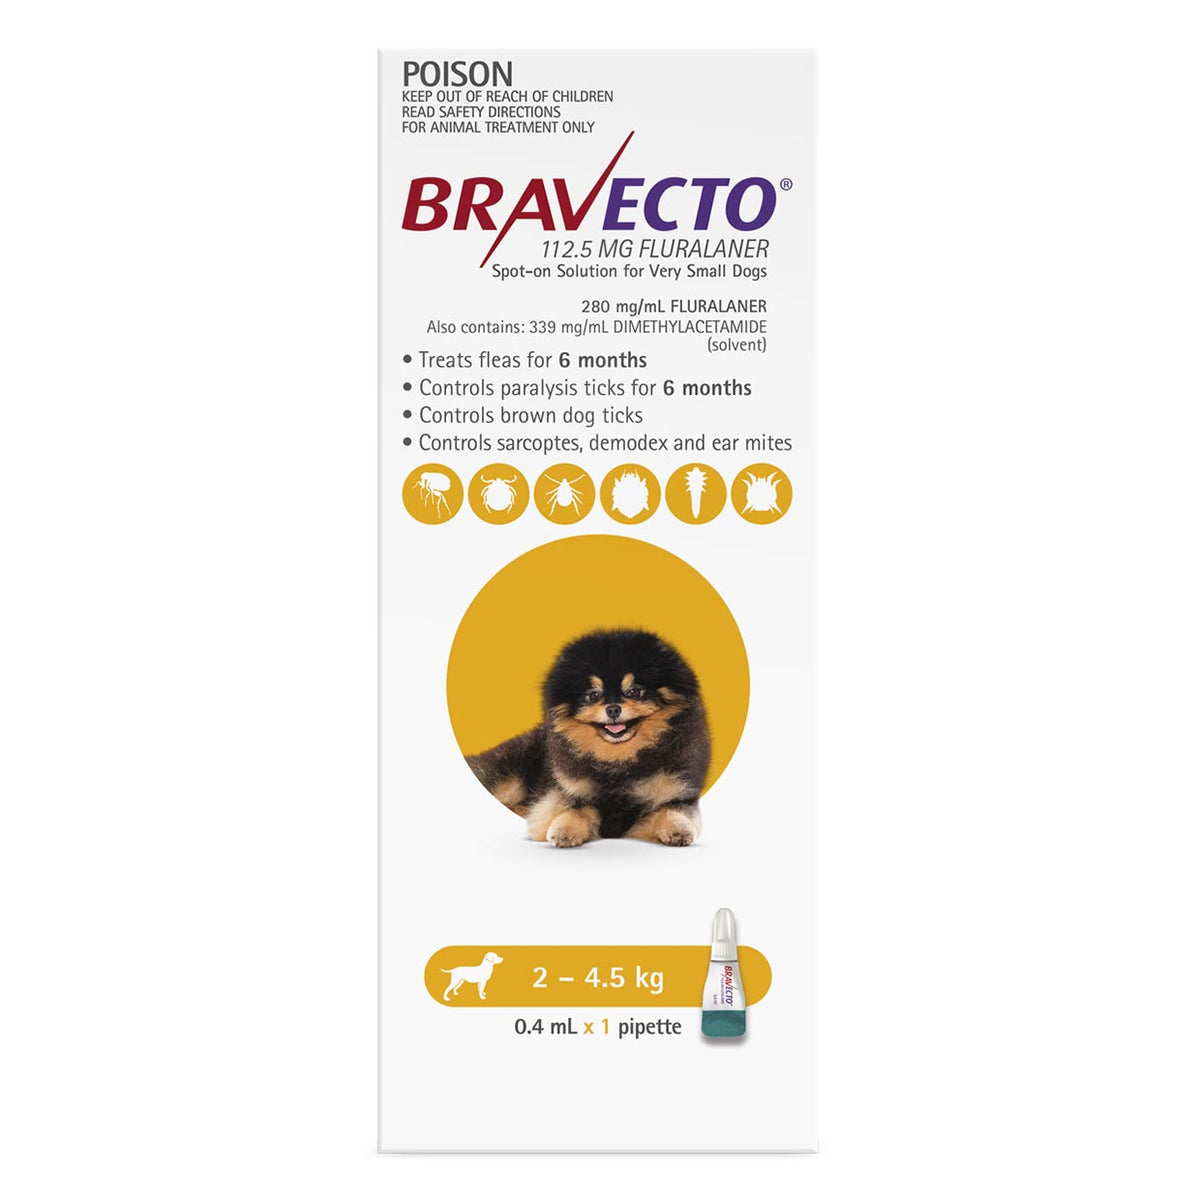 Bravecto Spot-on for Dogs 2kg-4.5kg (Yellow) - 6 Month Flea and Tick Protection